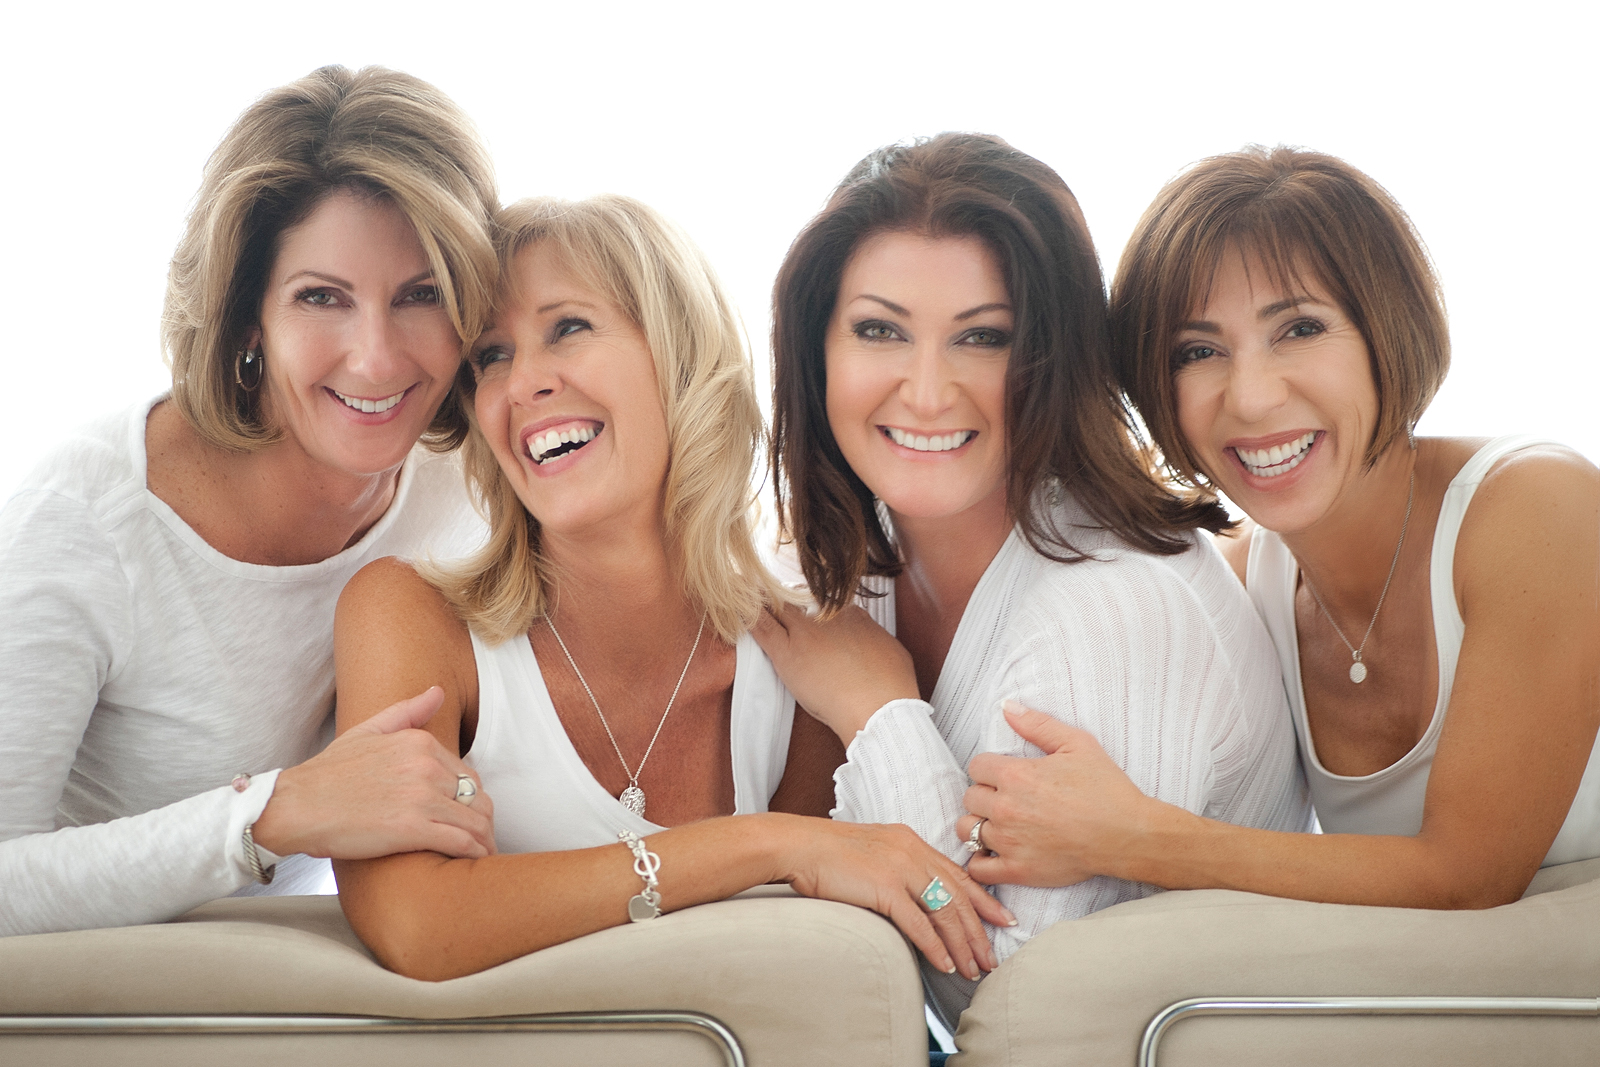 8-friends-laughing-smiling-group-portrait-backlit.jpg